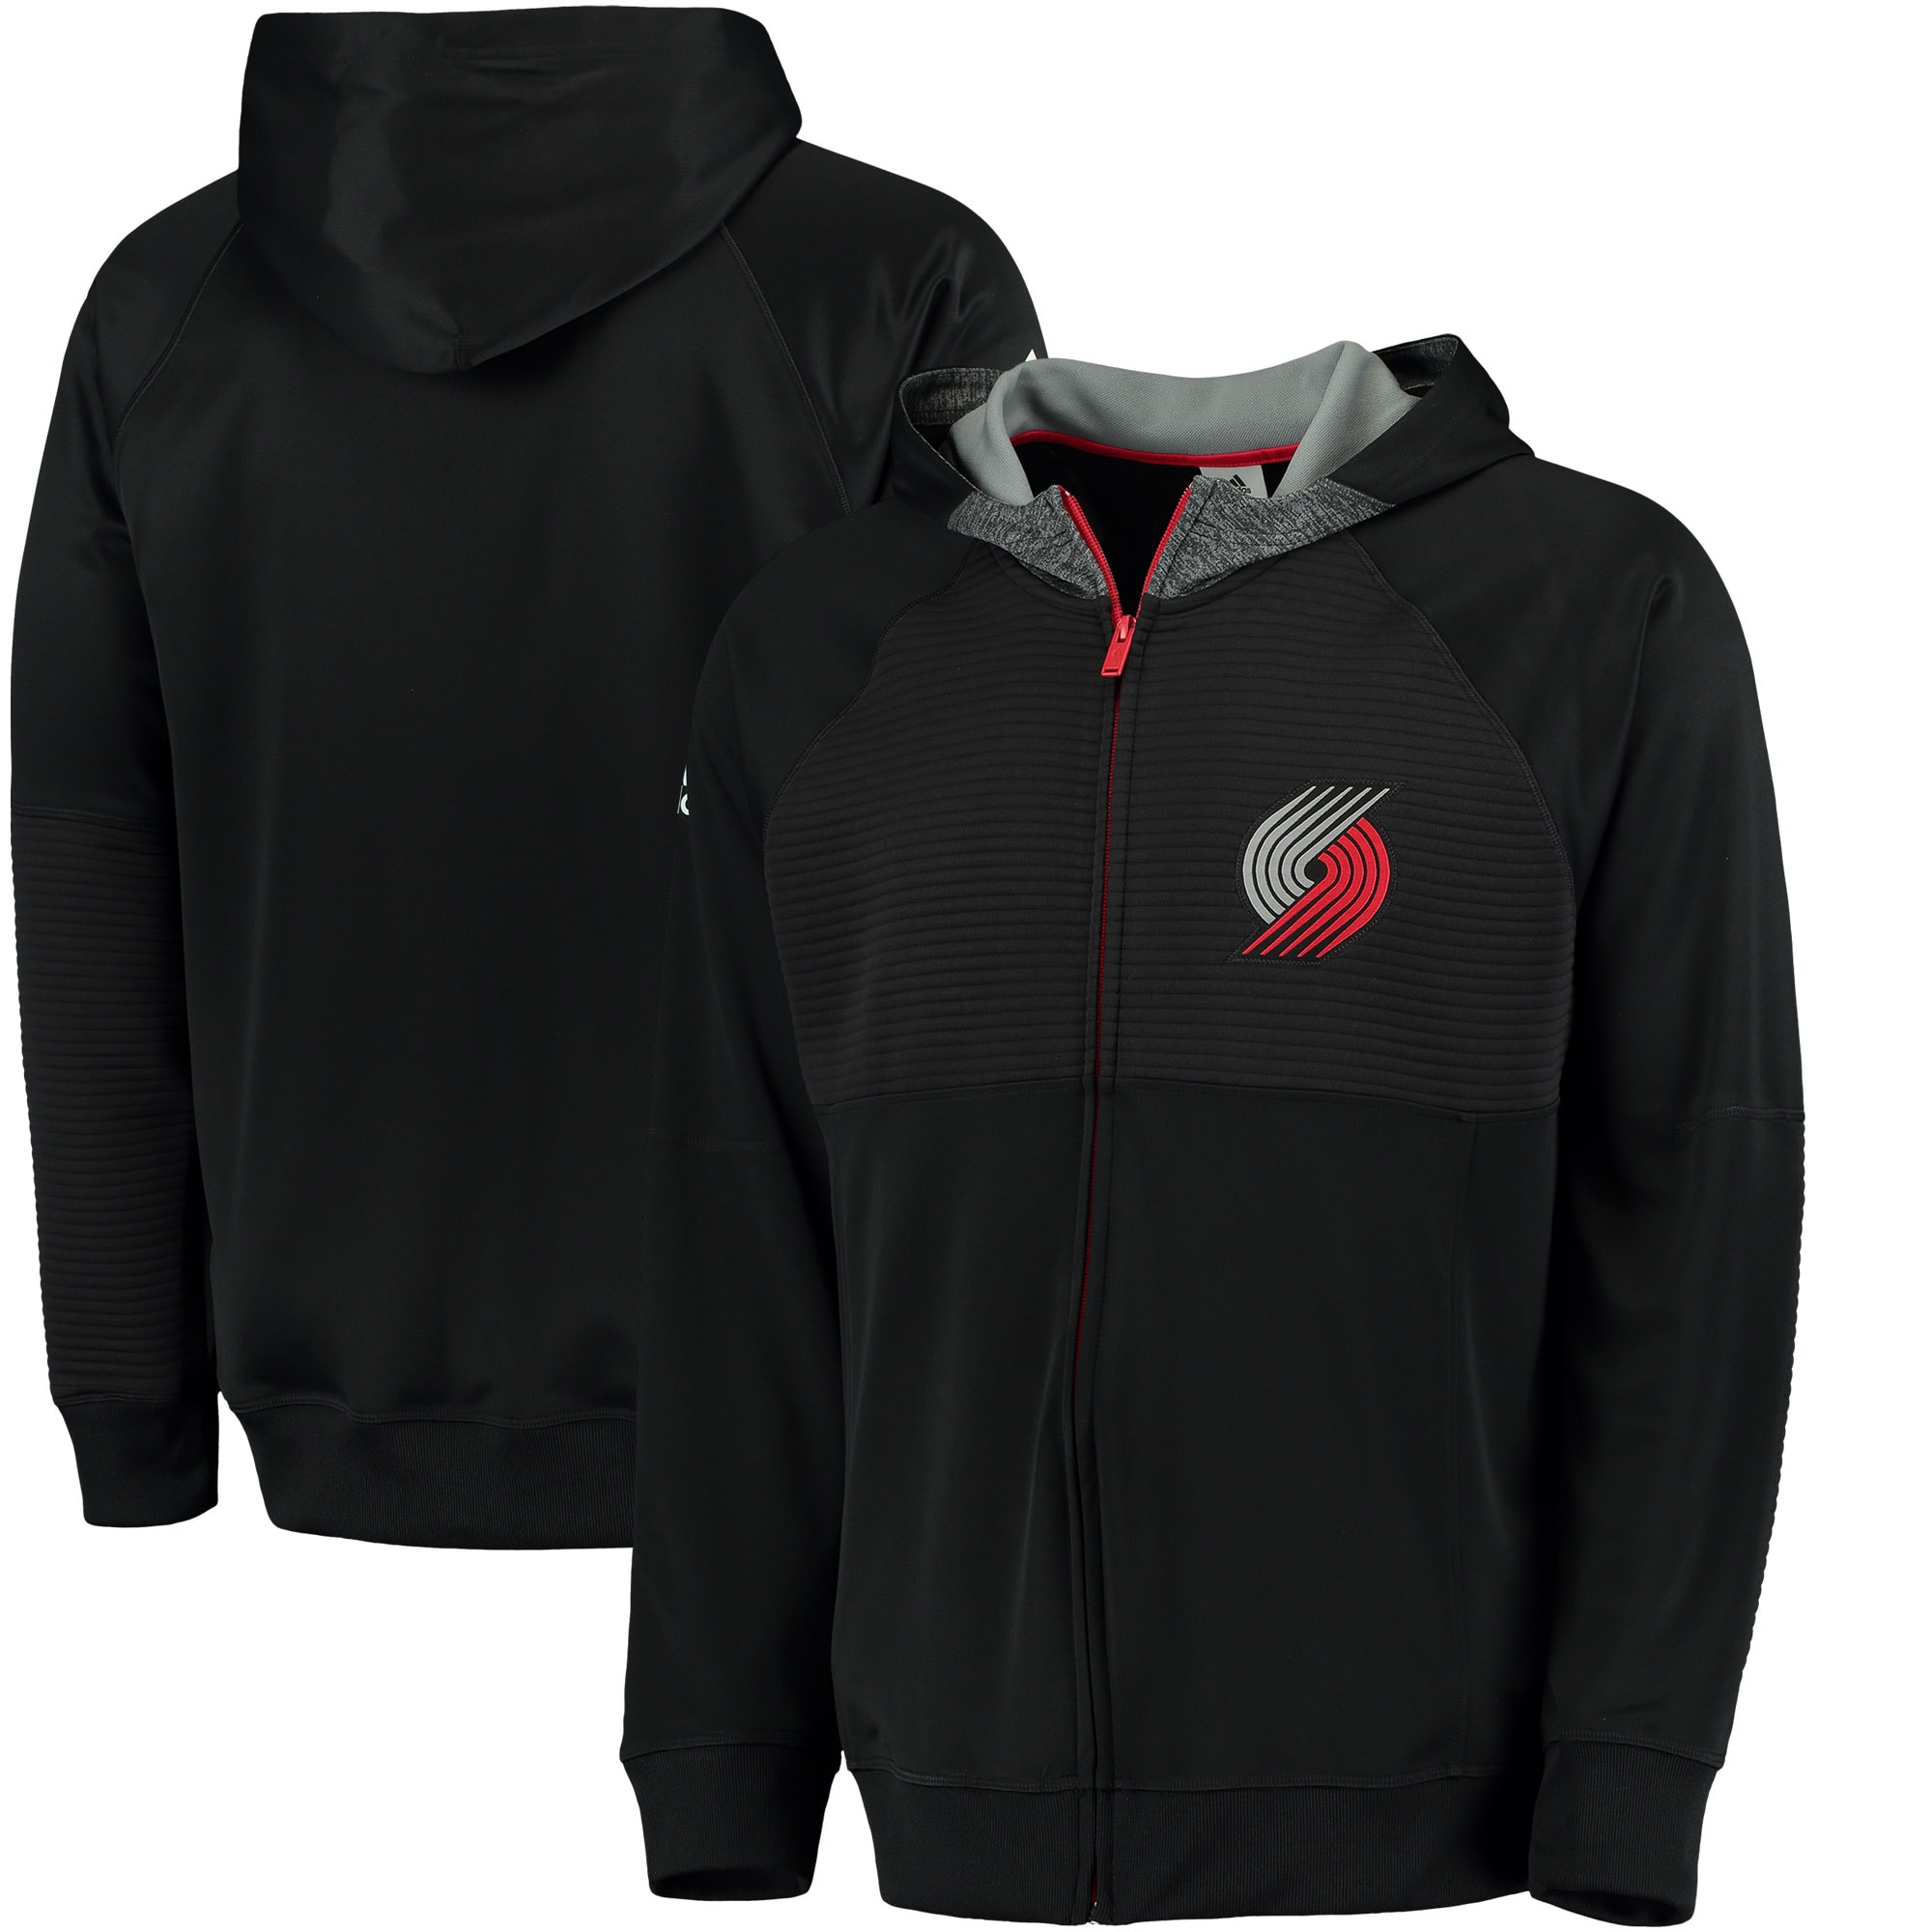 Portland Trail Blazers adidas 2016 Pre-Game Full-Zip Hooded Jacket - Black